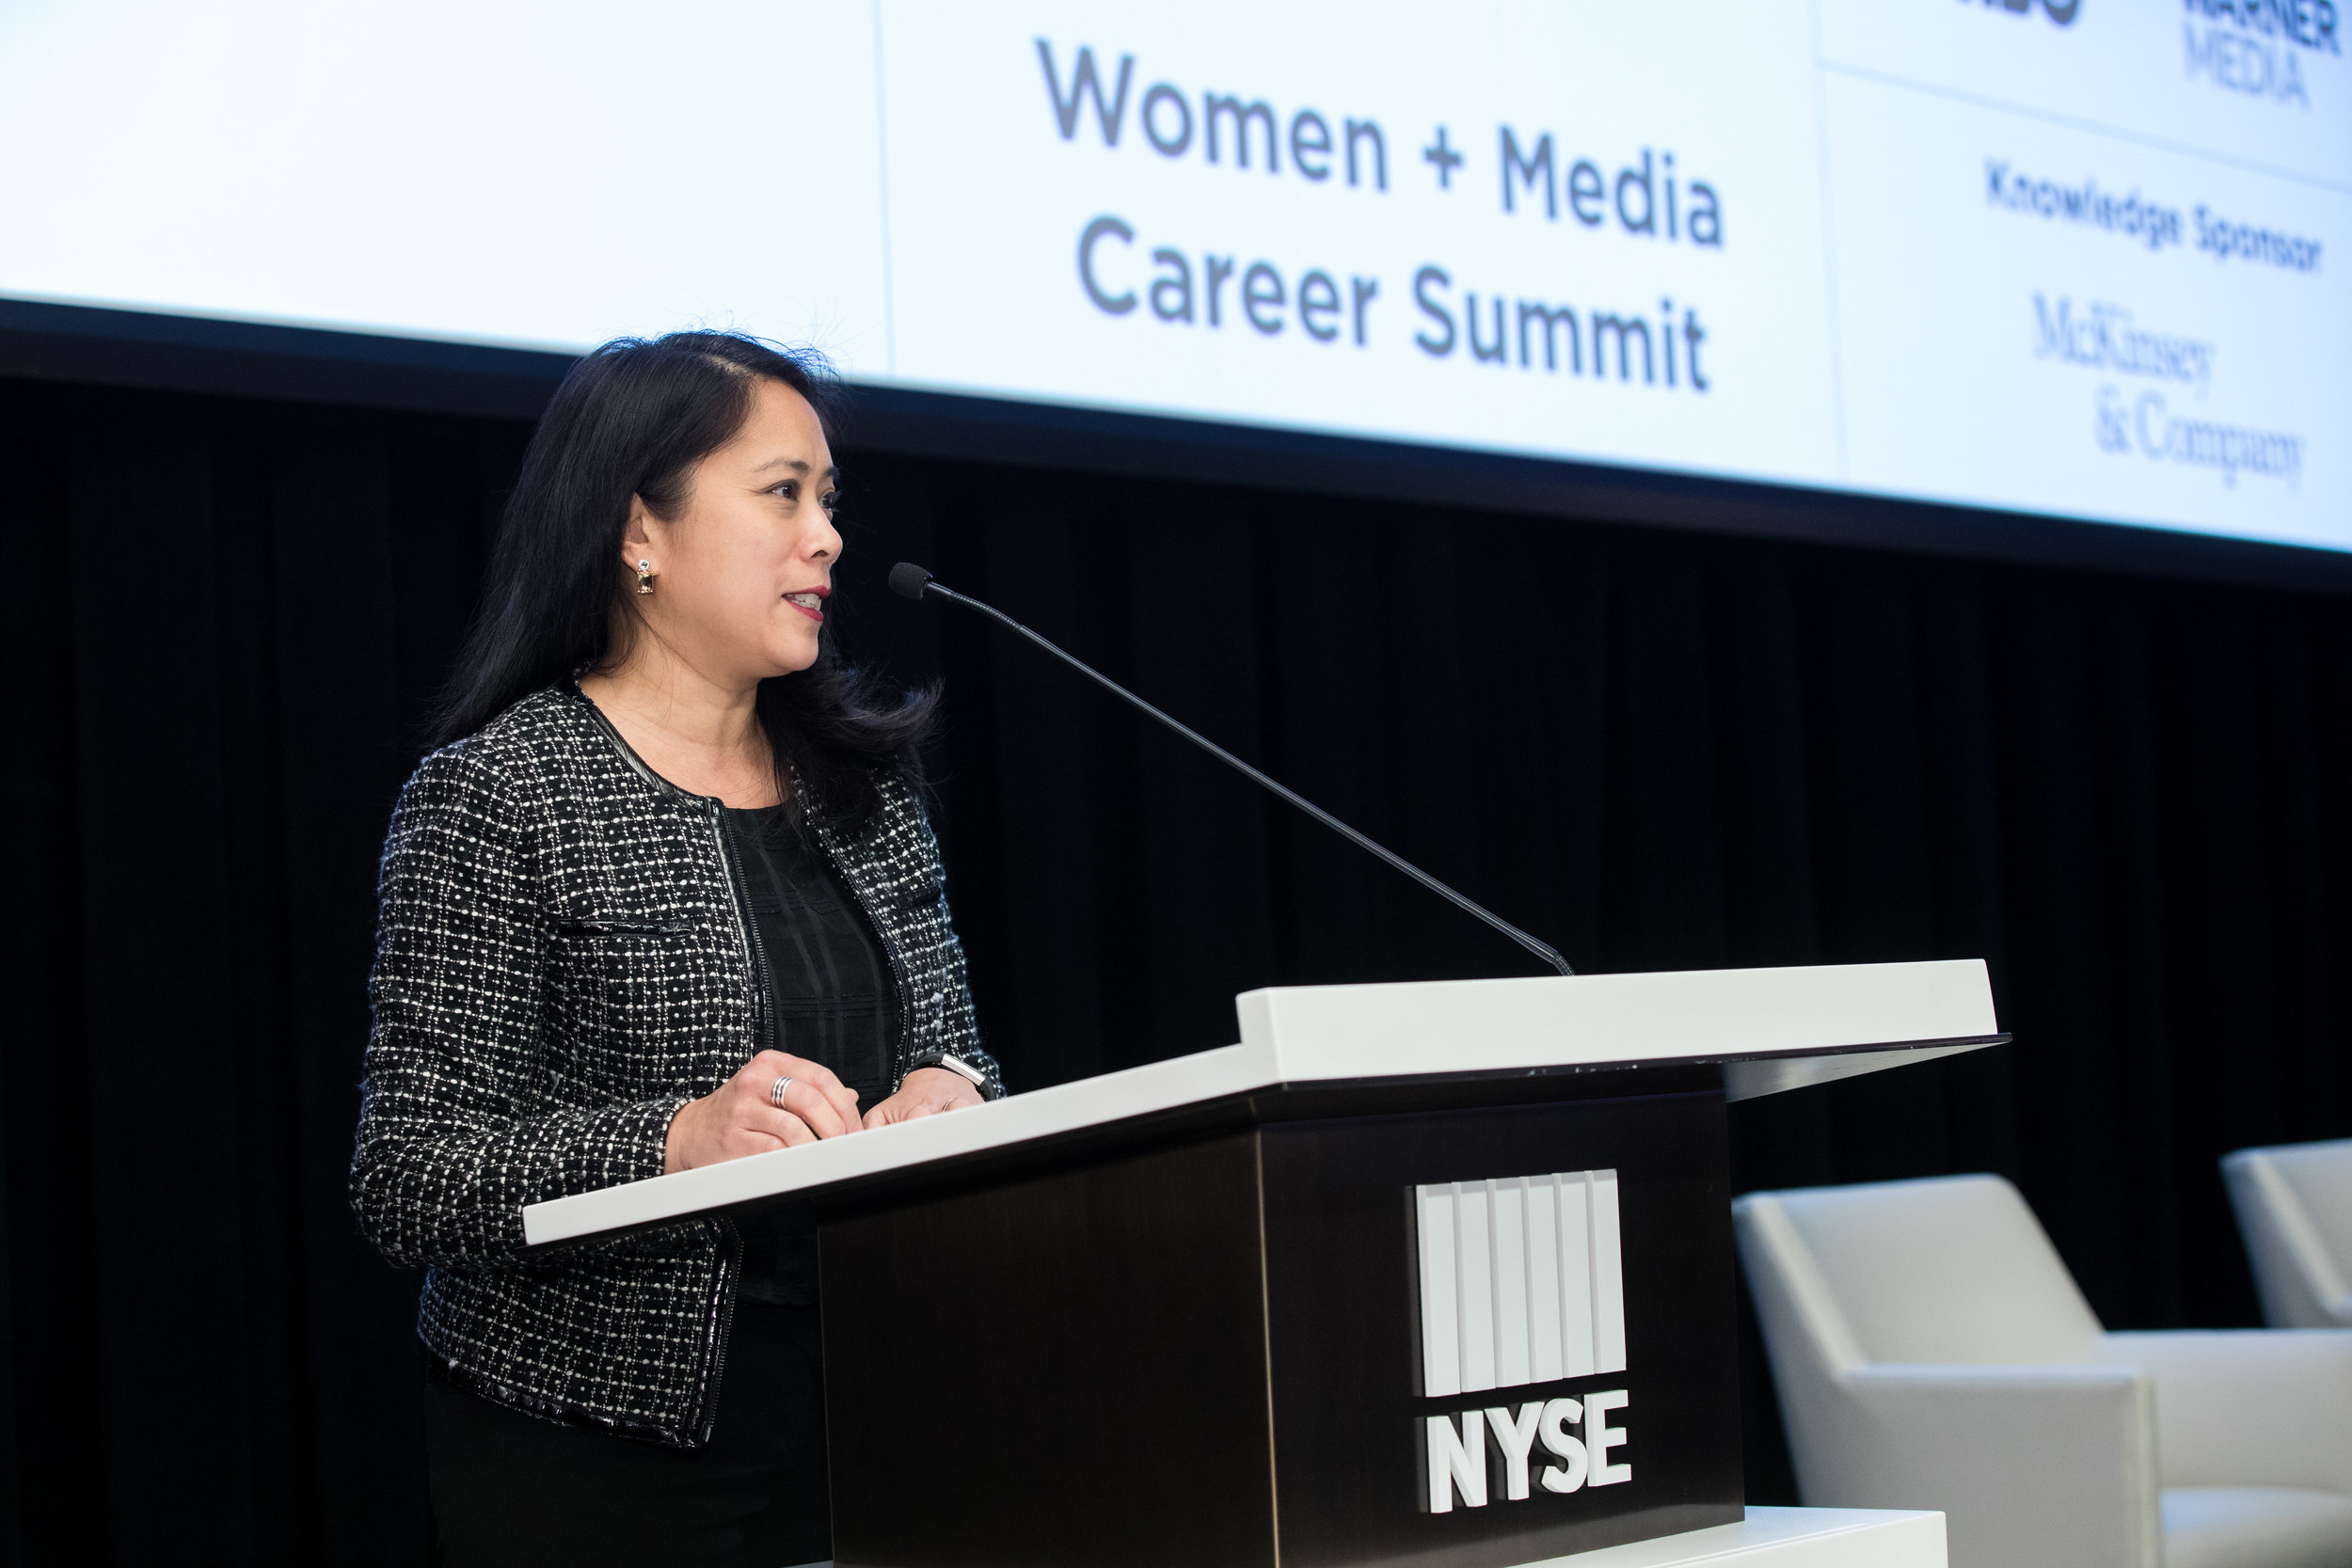 Women in Media Career Summit. Undergrad and grad students from tri-state are colleges and universities